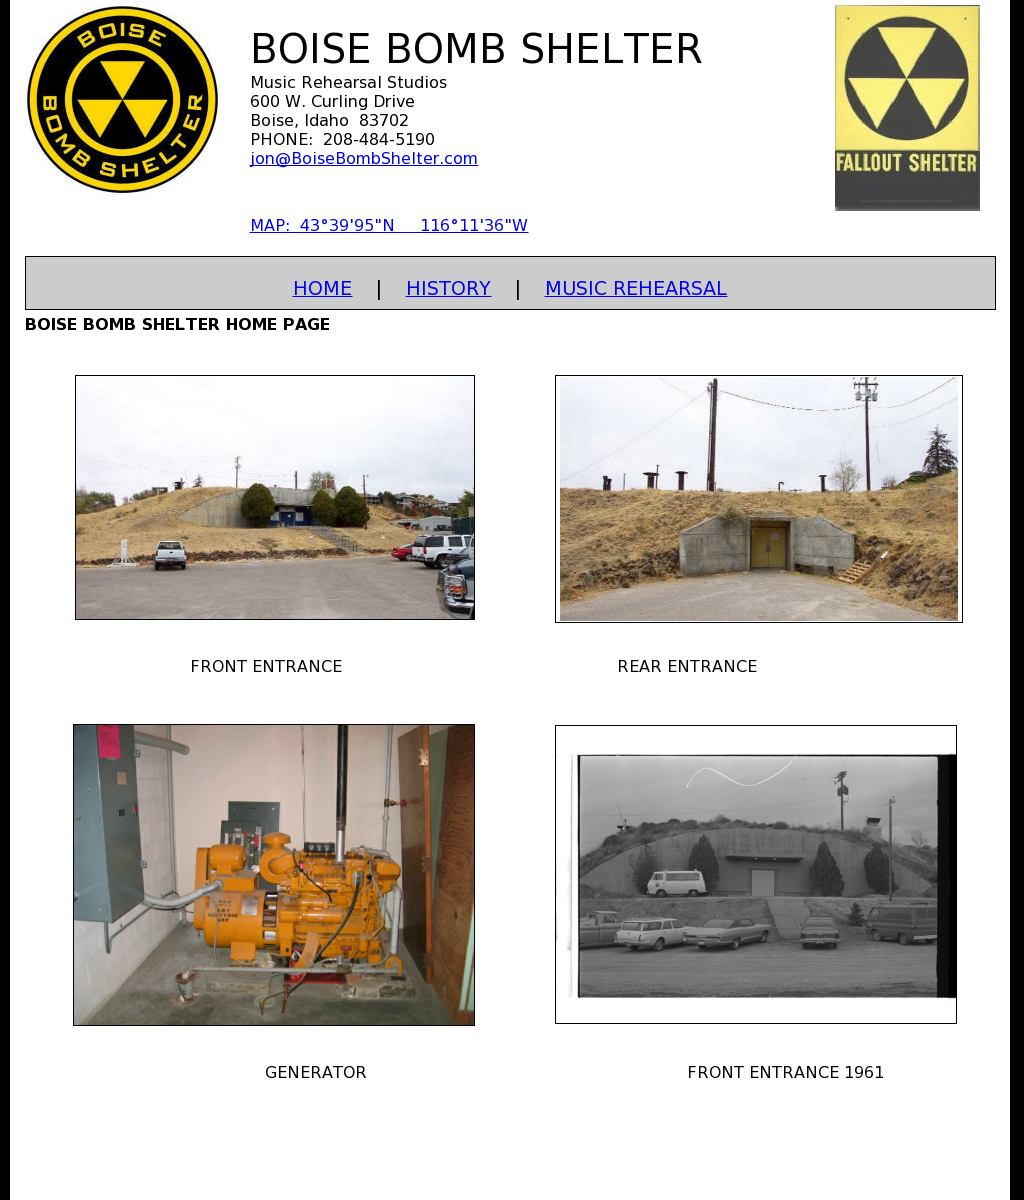 Boise Bomb Shelter Competitors, Revenue and Employees